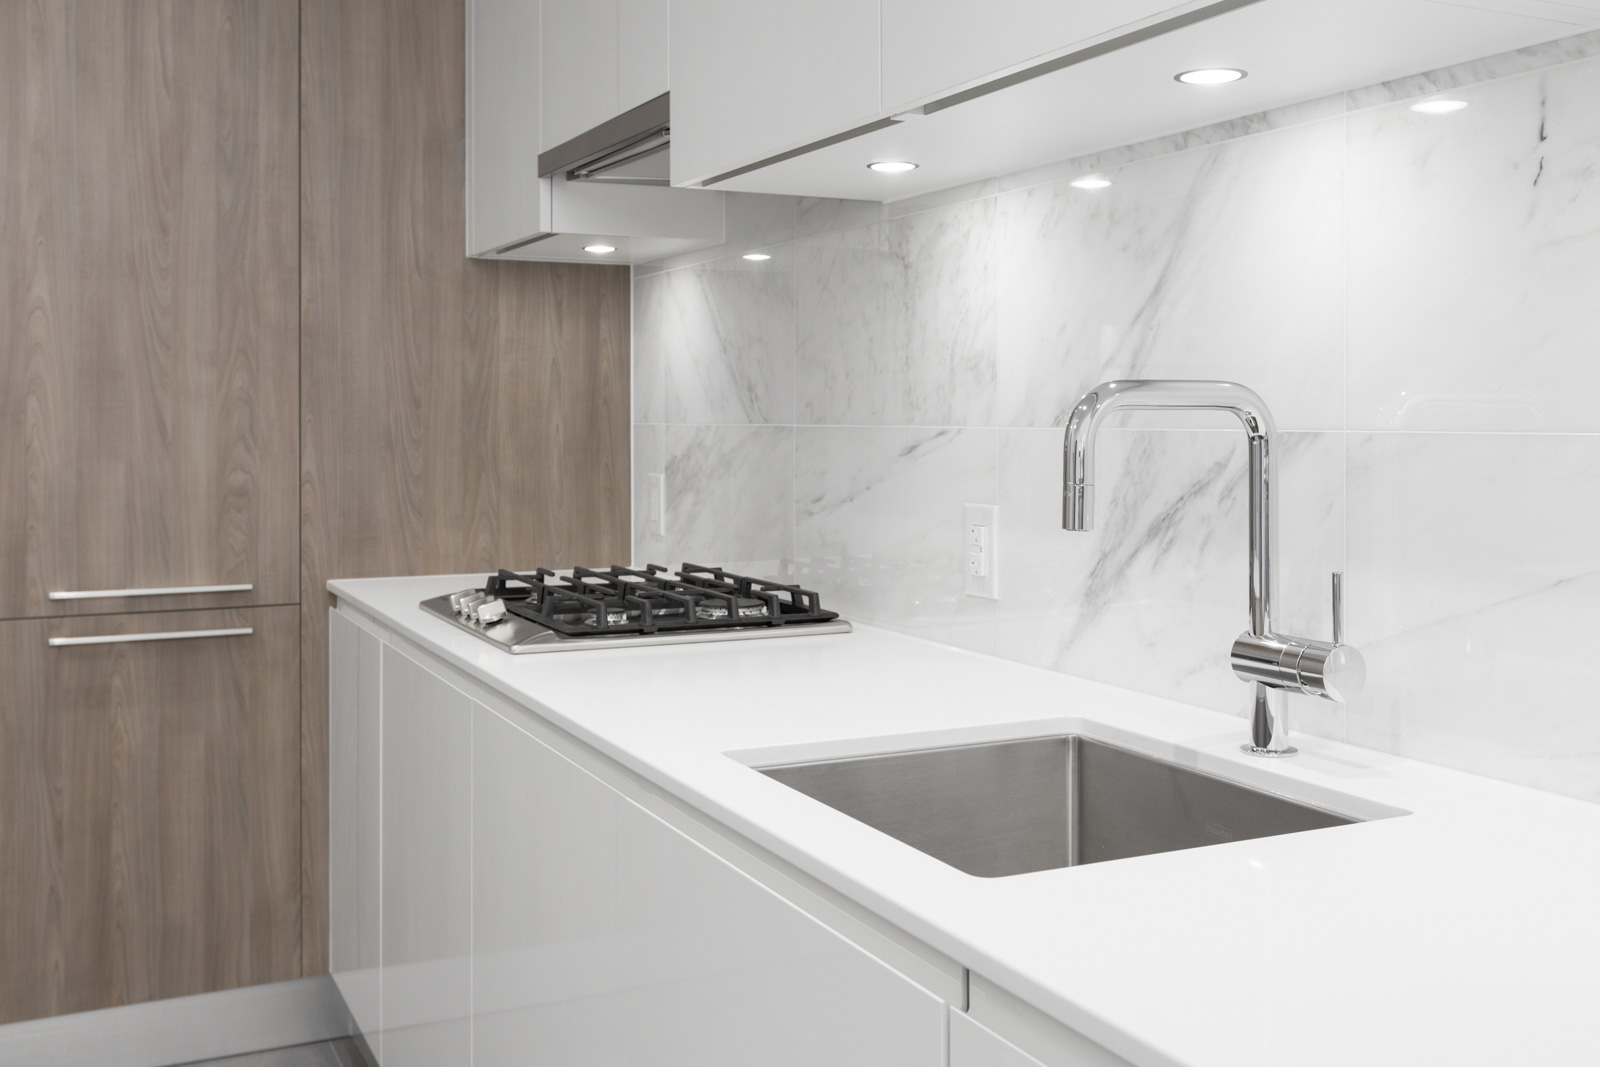 kitchen counter and sink and stovetop in brand new condo at brentwood tower one of amazing brentwood in burnaby